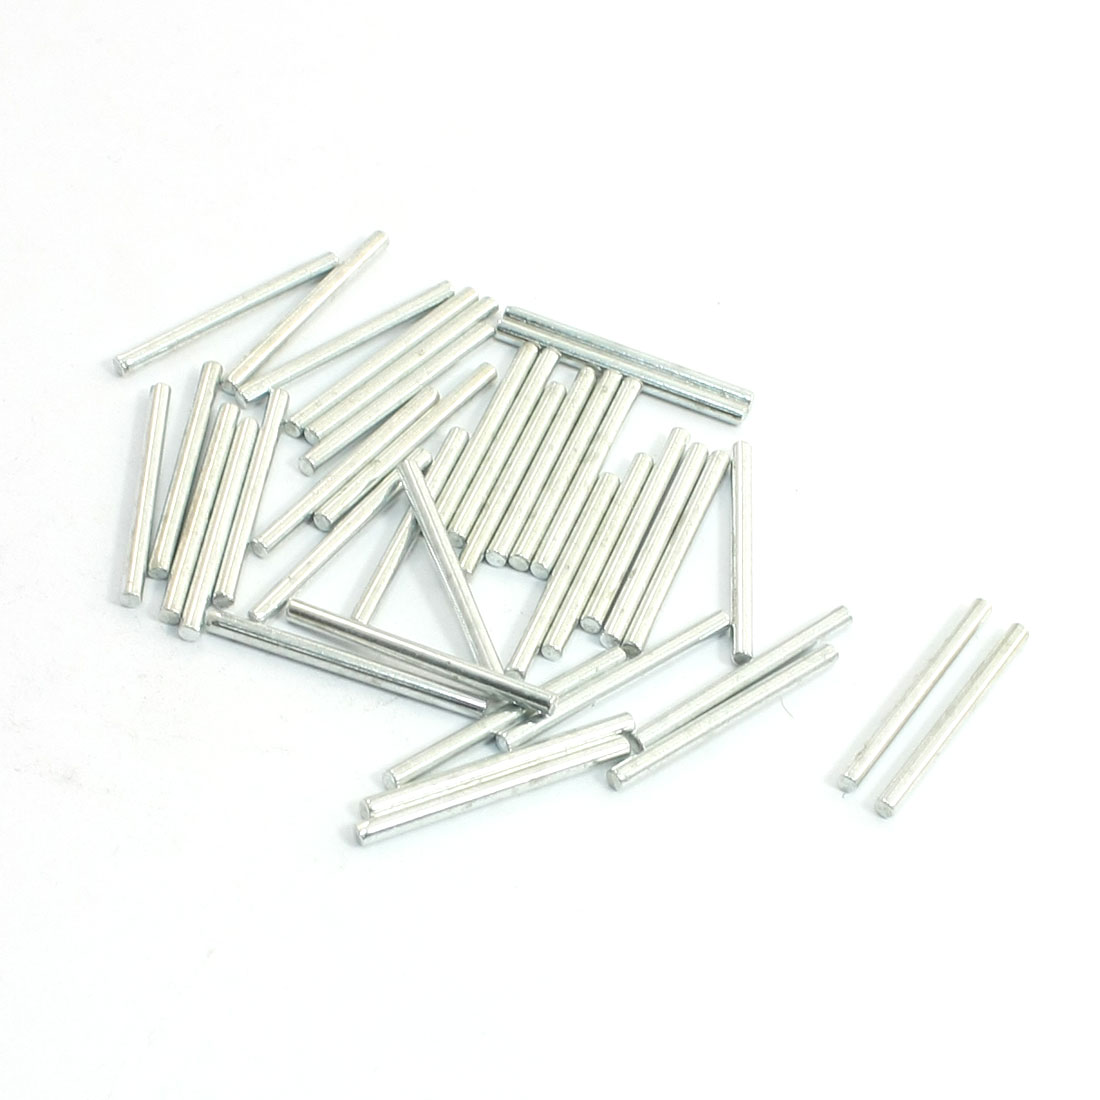 40pcs-Silver-Tone-Stainless-Steel-Round-Models-Part-Axle-25mm-x-2mm